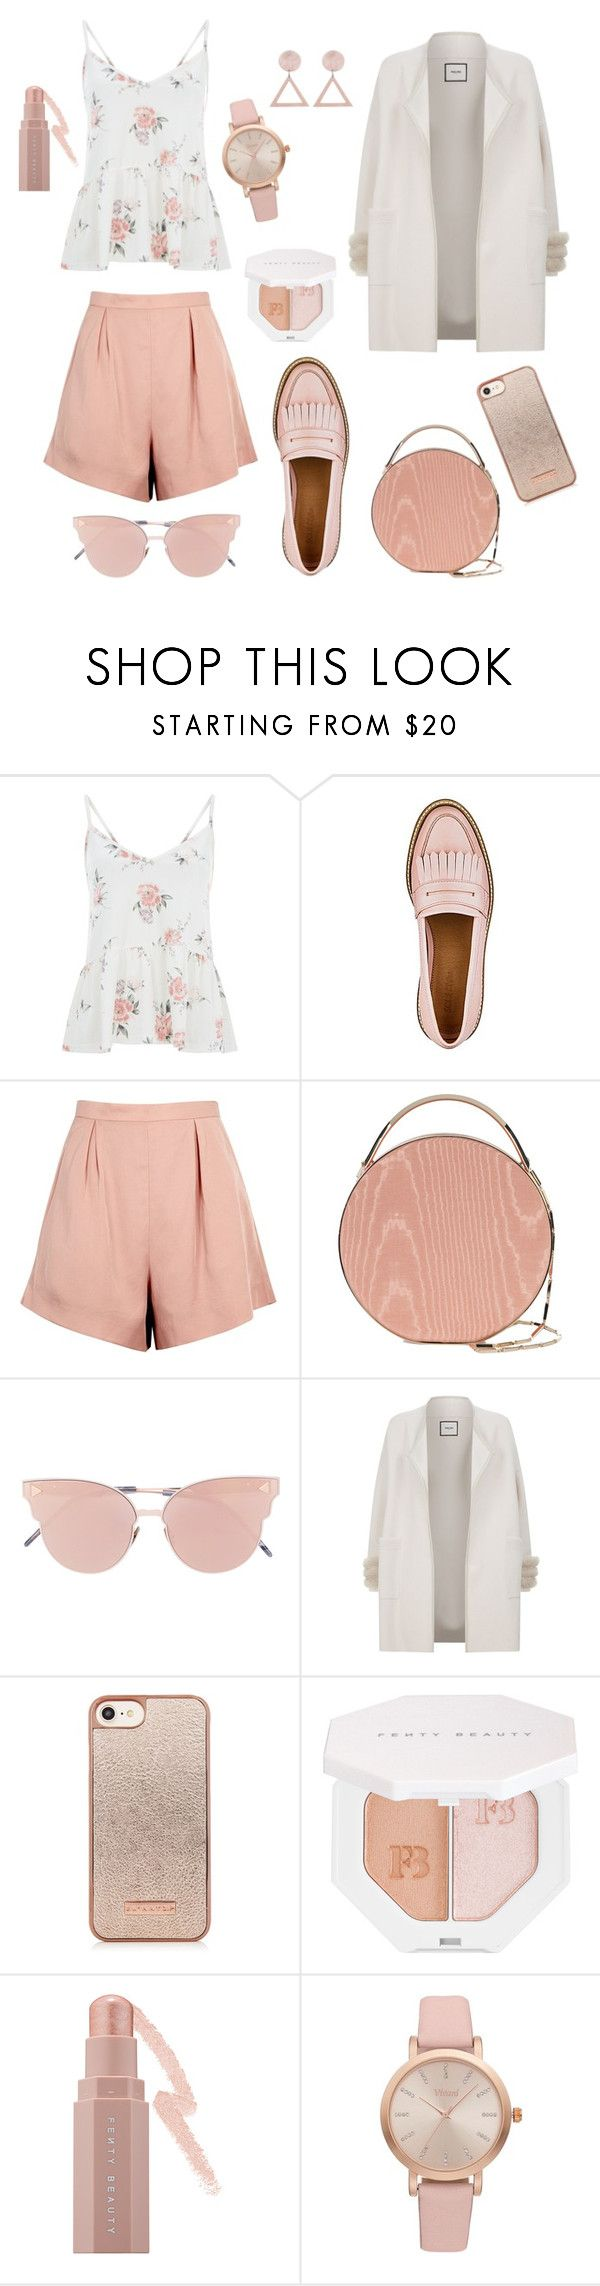 """Untitled #334"" by inesgenebra on Polyvore featuring Finders Keepers, Eddie Borgo, So.Ya, Max & Moi, Puma and Vivani"